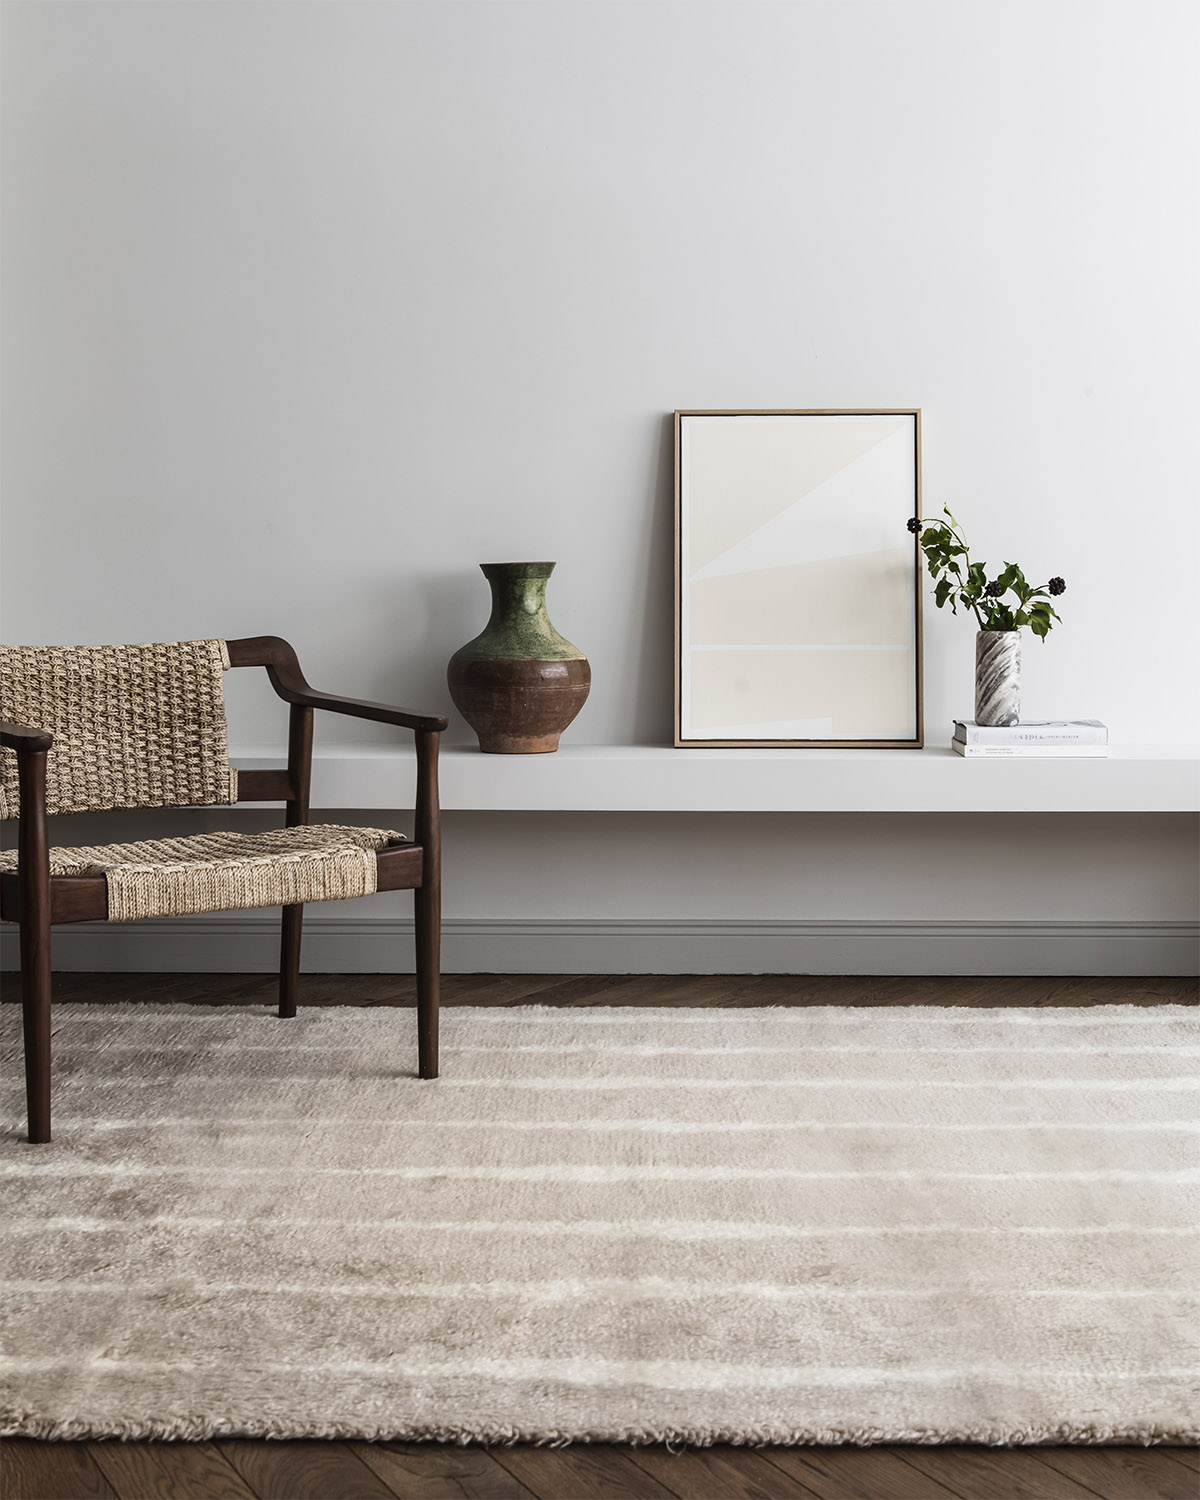 The shaggy Fjord rug in Pale Sand shown in a light living room setting together with a dark wooden chair with a woven seat.